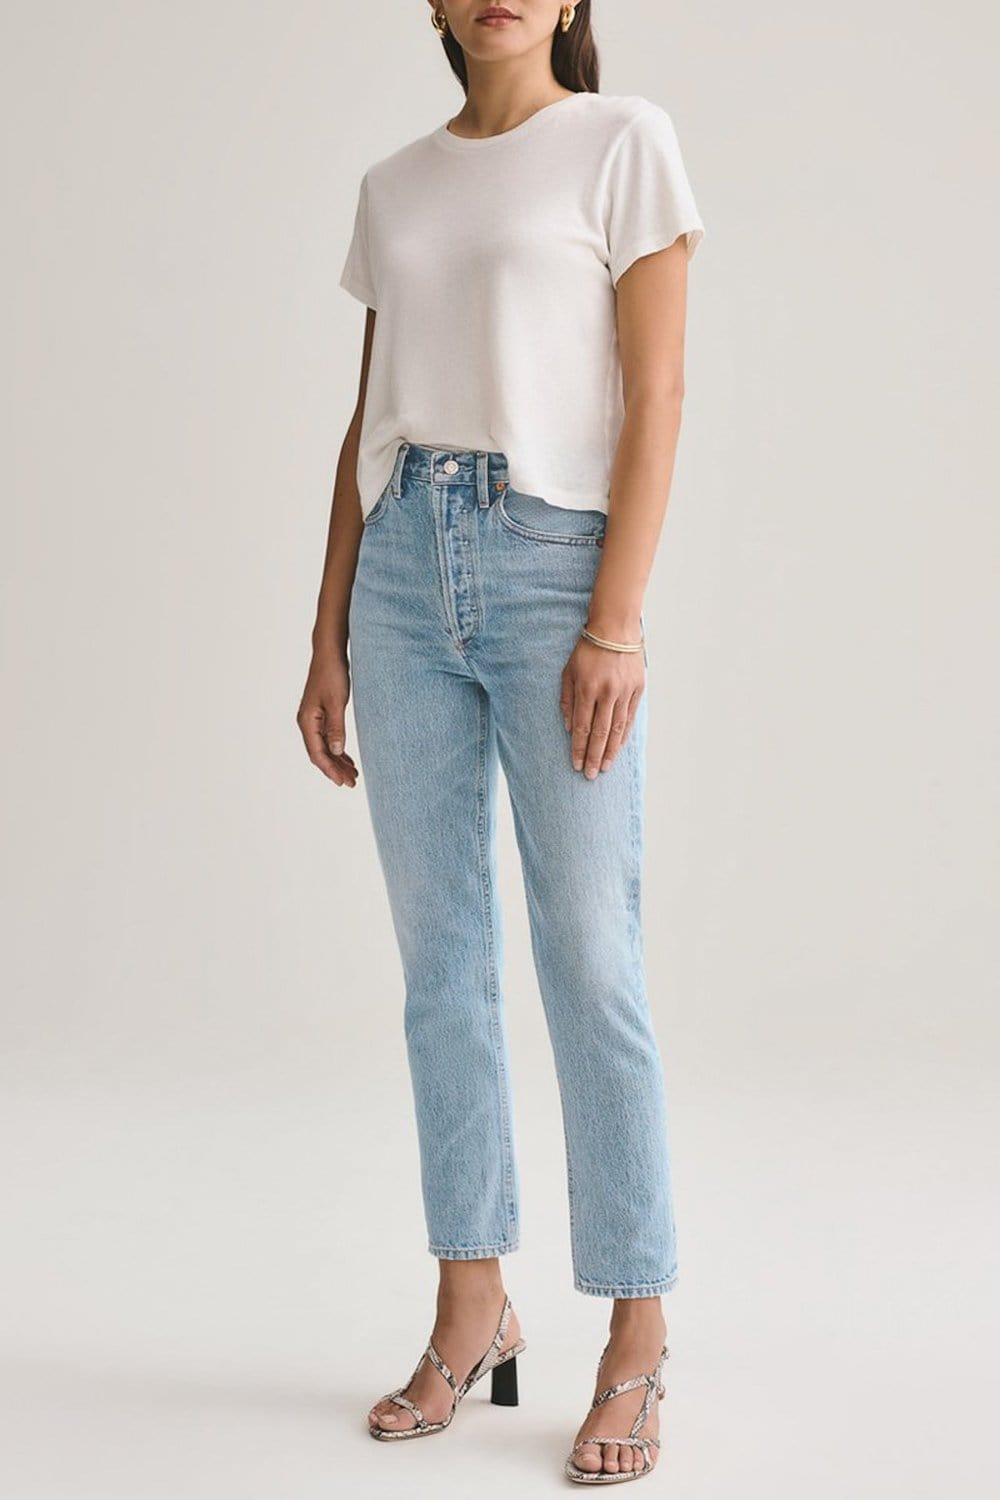 AGOLDE Riley Crop Hi Rise Straight Jean Renewal.